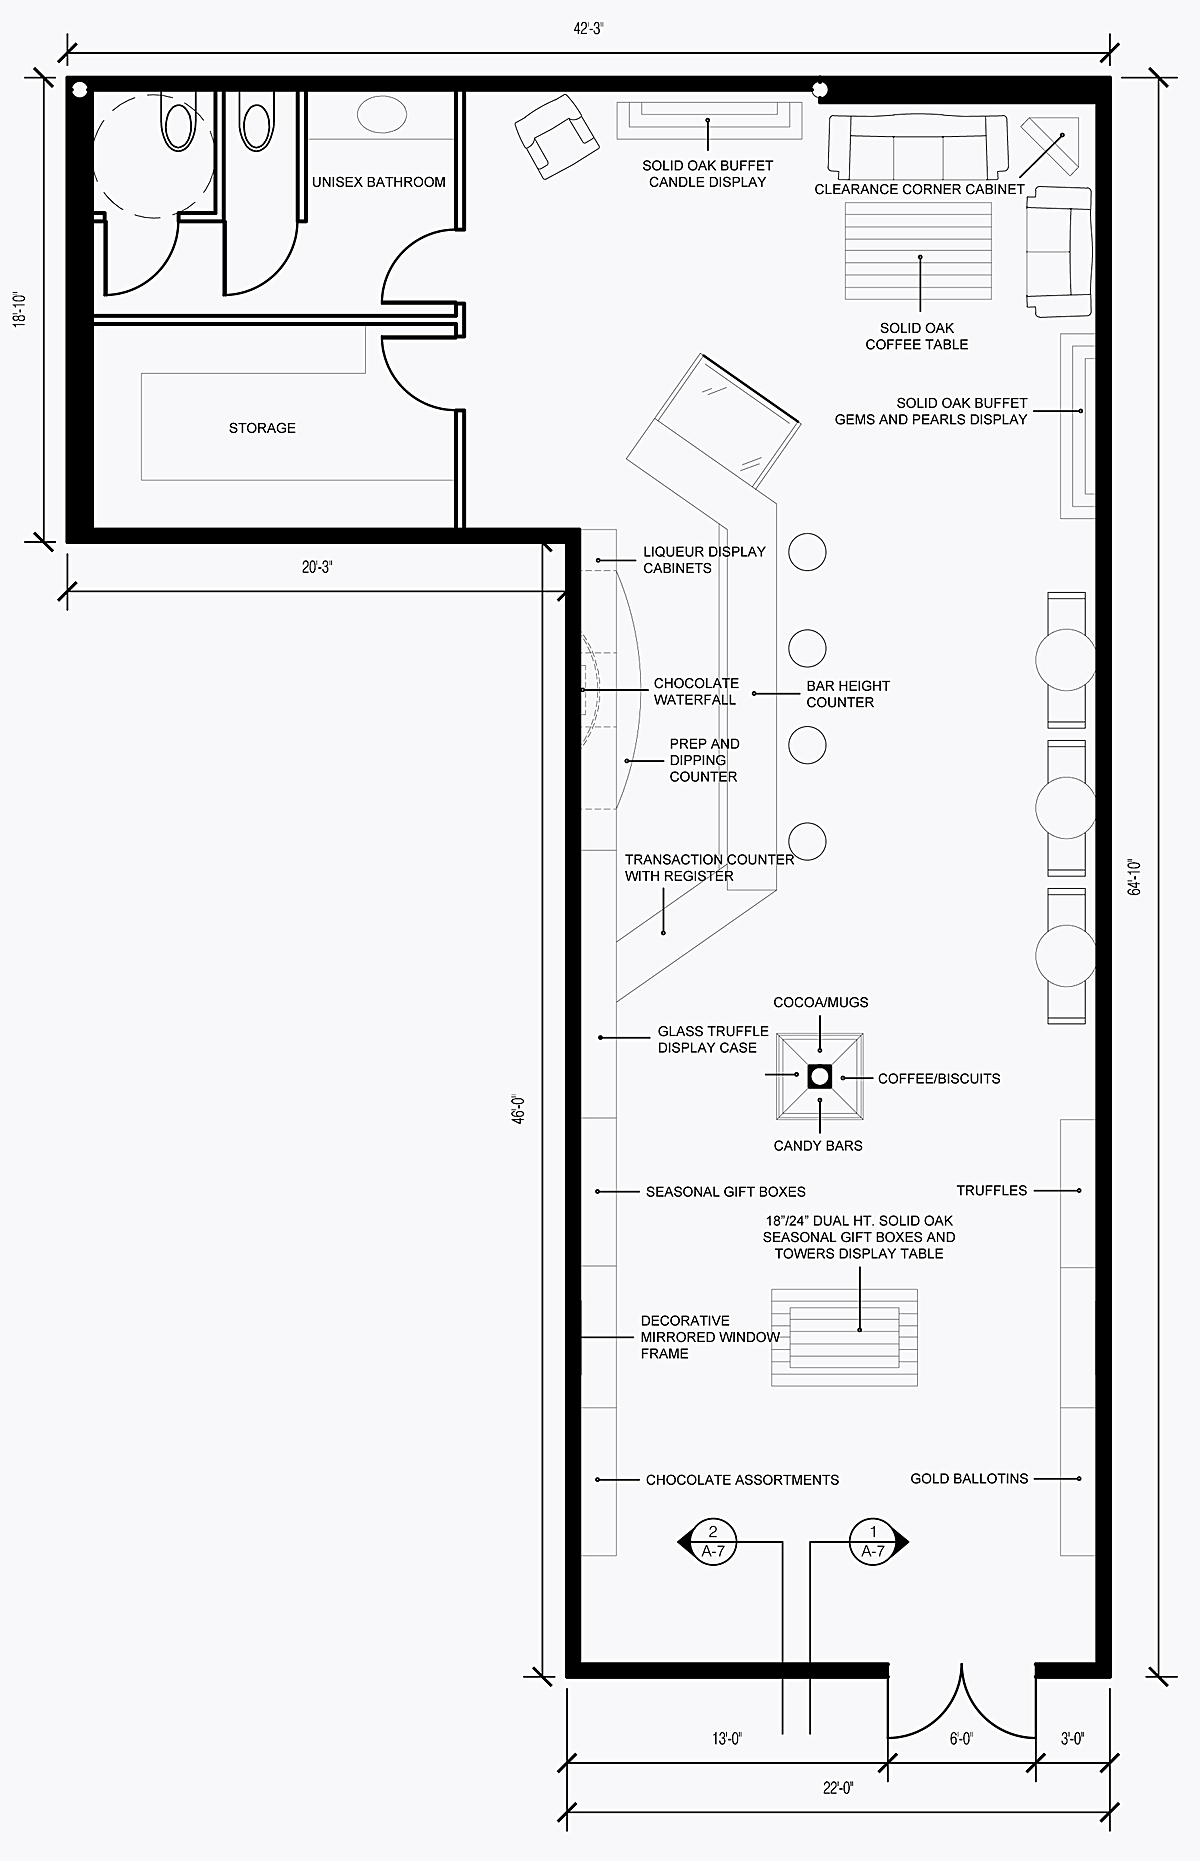 Retail store layout best layout room for Shop design plans